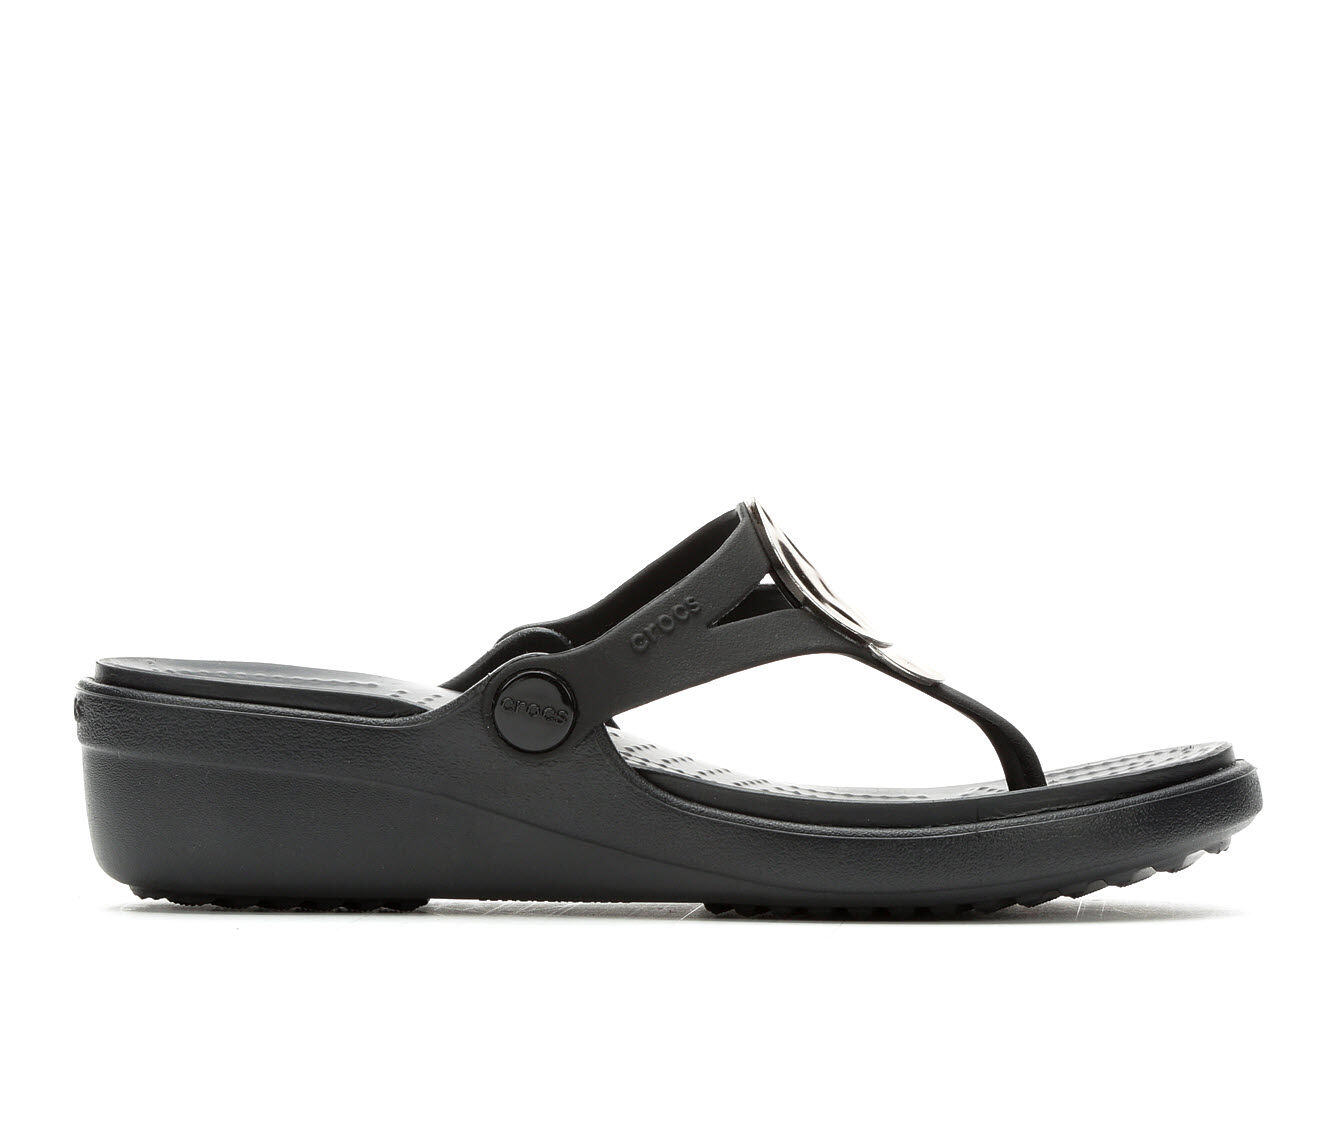 Purchase Price Women's Crocs Sanrah Metallic Wedge Gunmetal/Blk